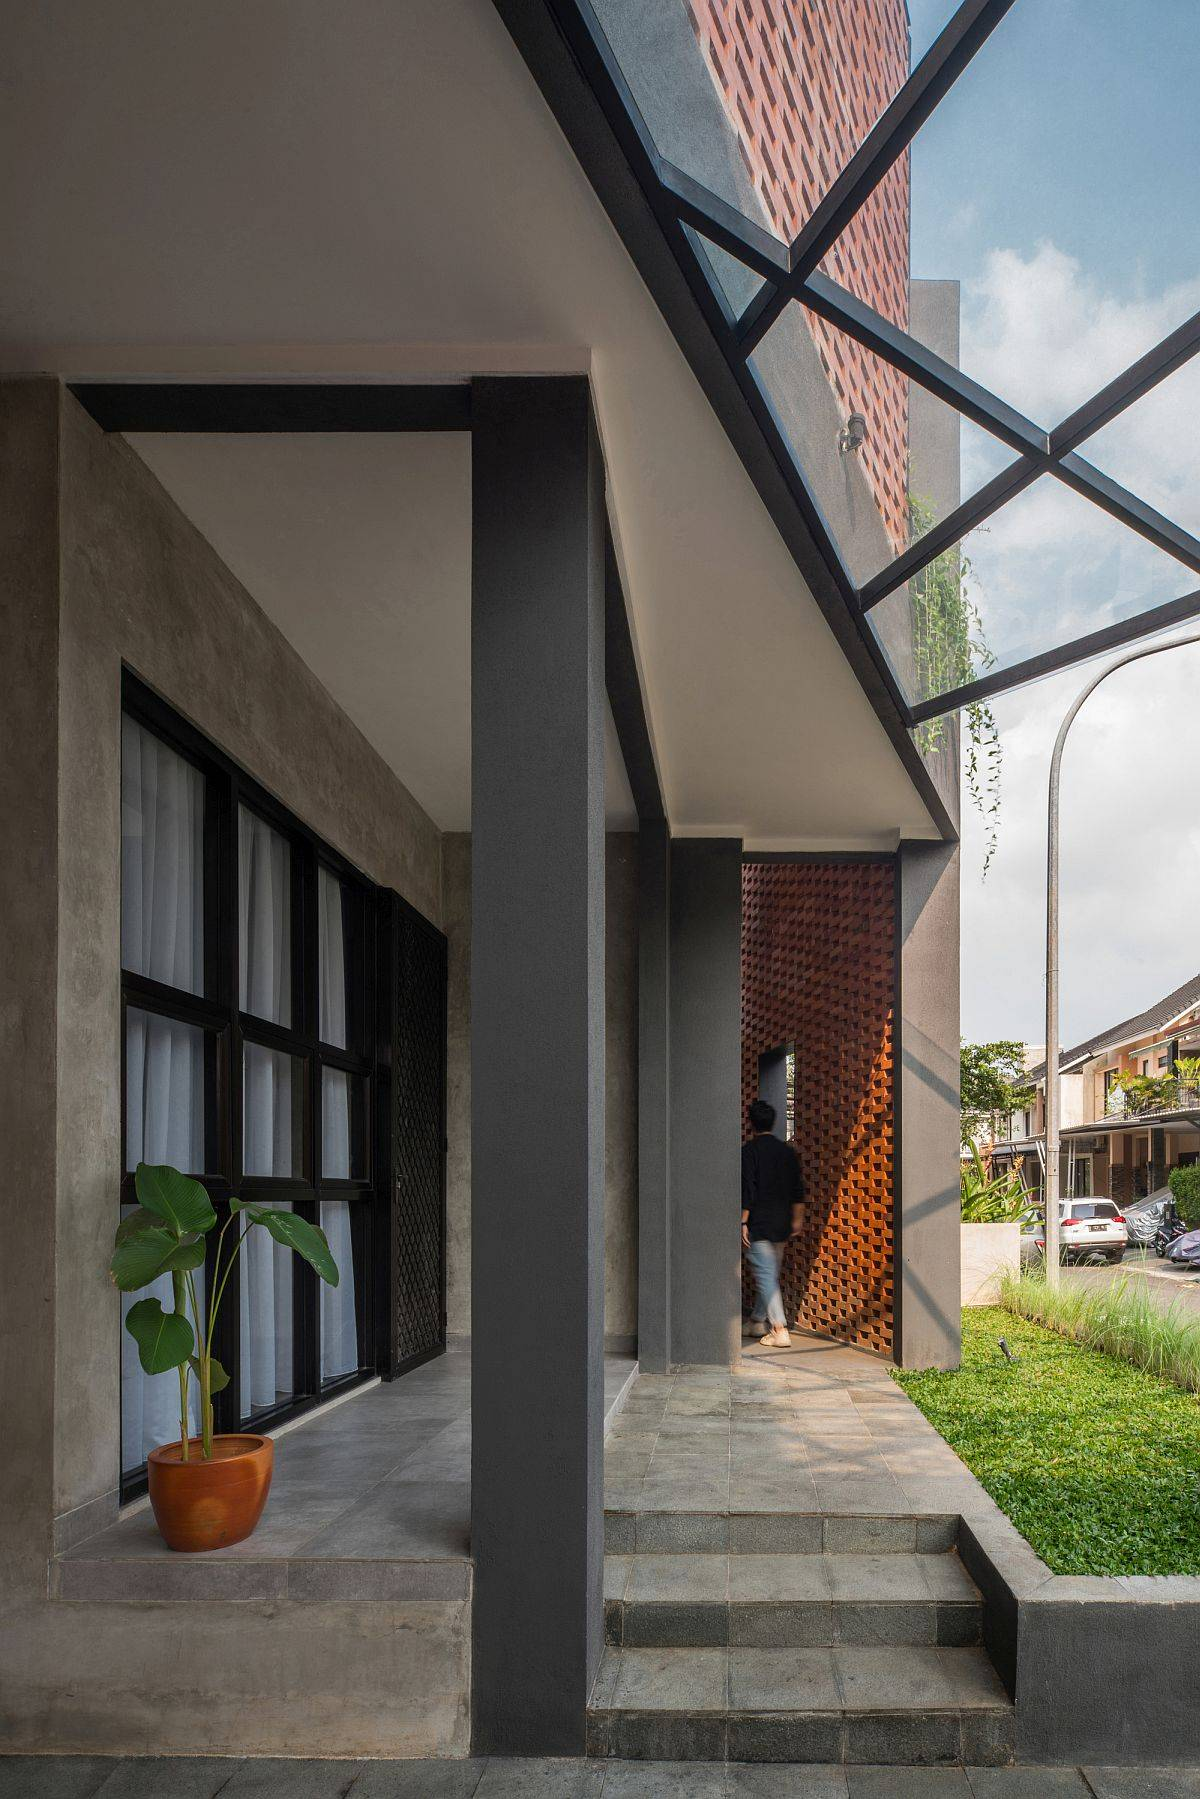 Renovated-home-in-Indonesia-with-a-brick-facade-that-makes-plenty-of-difference-to-its-visual-appeal-85639